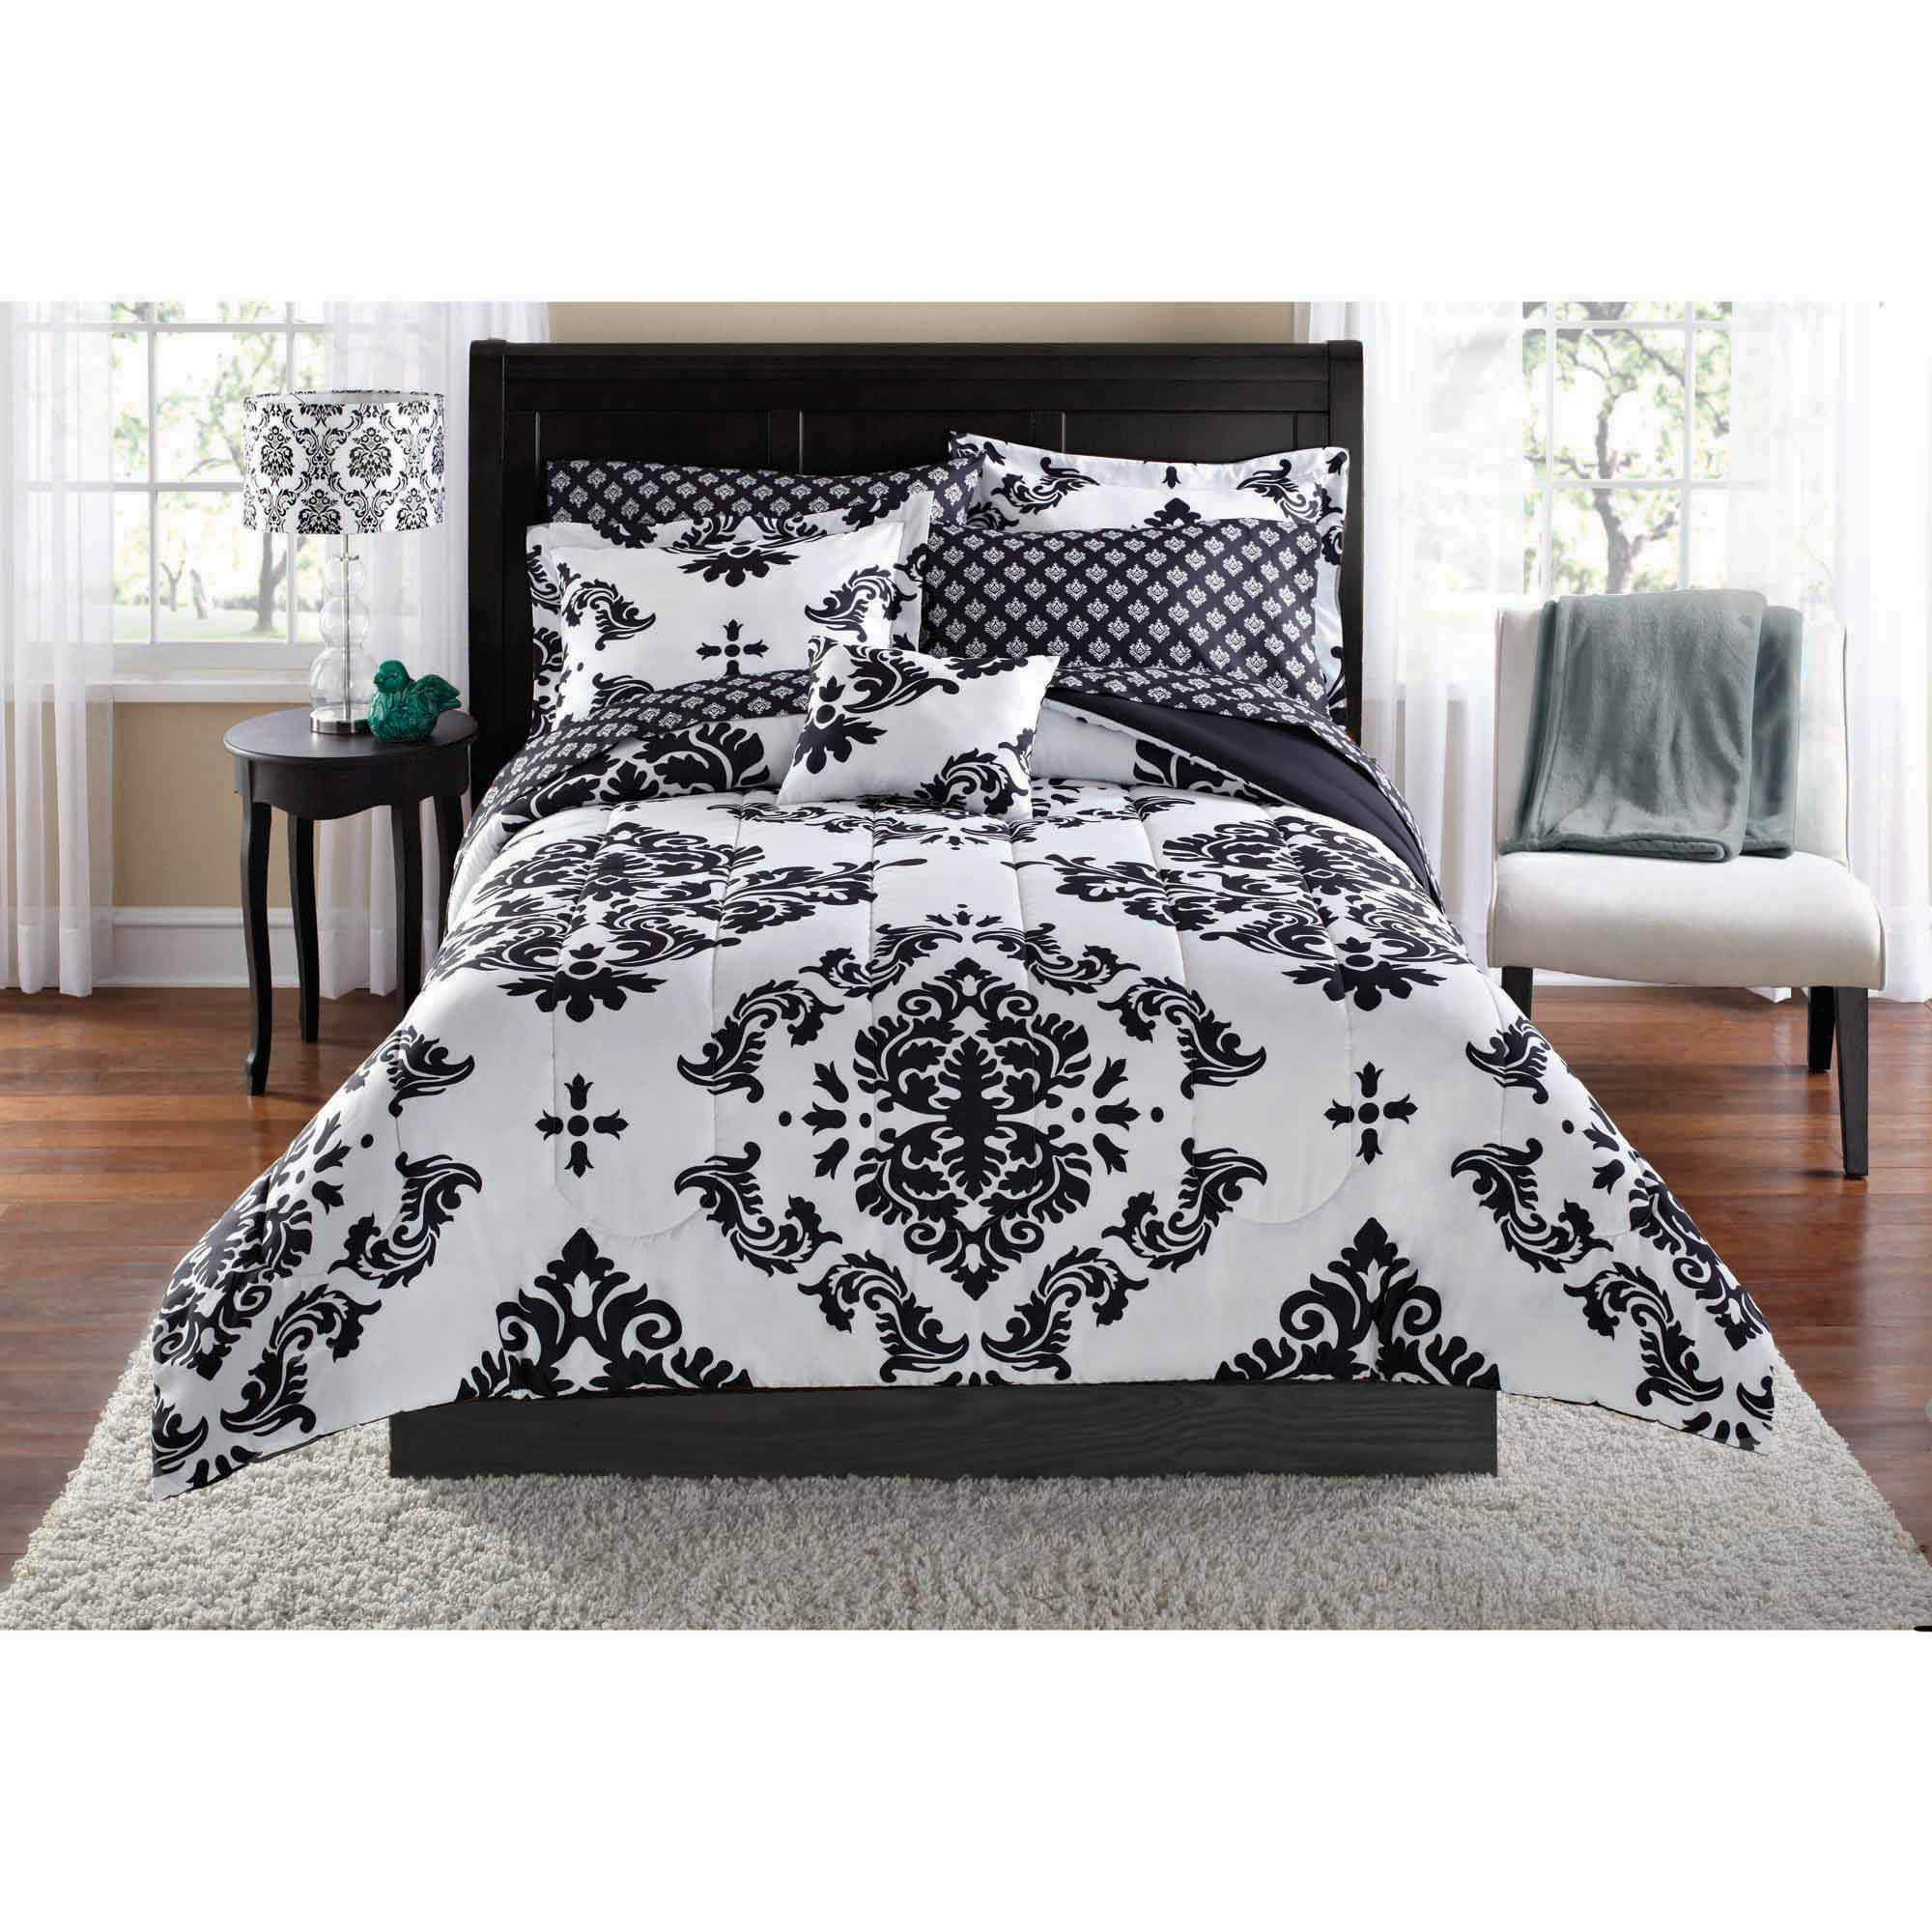 Mainstays Classic Noir Twin Xl Bed In A Bag Coordinating Bedding Set Black